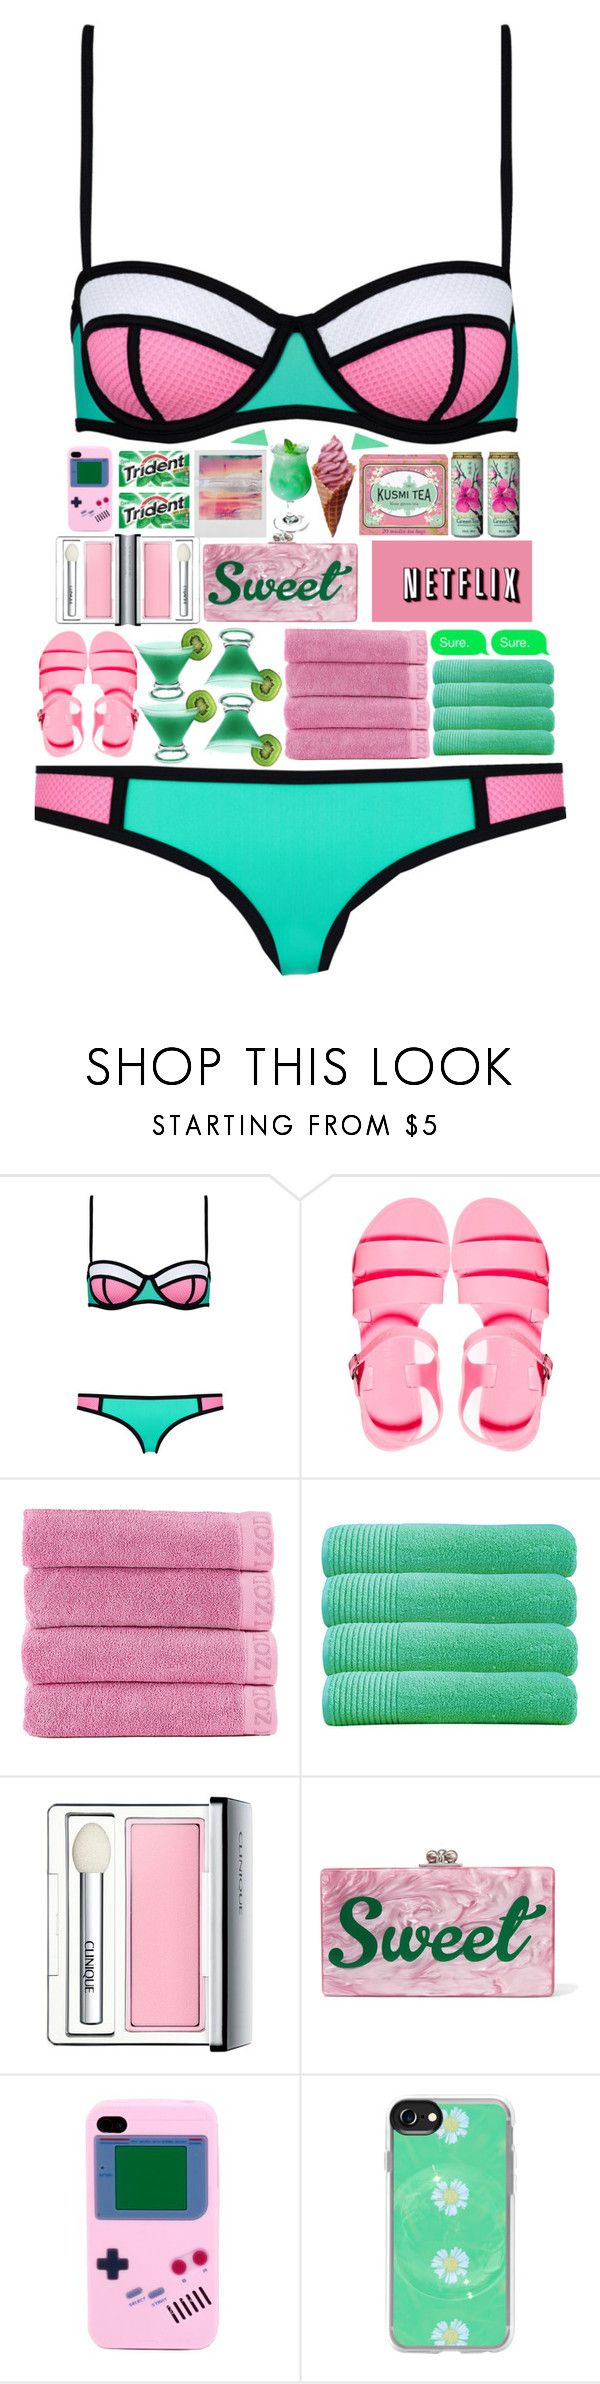 """""""5747"""" by tiffanyelinor ❤ liked on Polyvore featuring JuJu, FRUIT, Izod, Olivier Desforges, xO Design, Clinique, Edie Parker, Aime, Casetify and Kusmi Tea"""